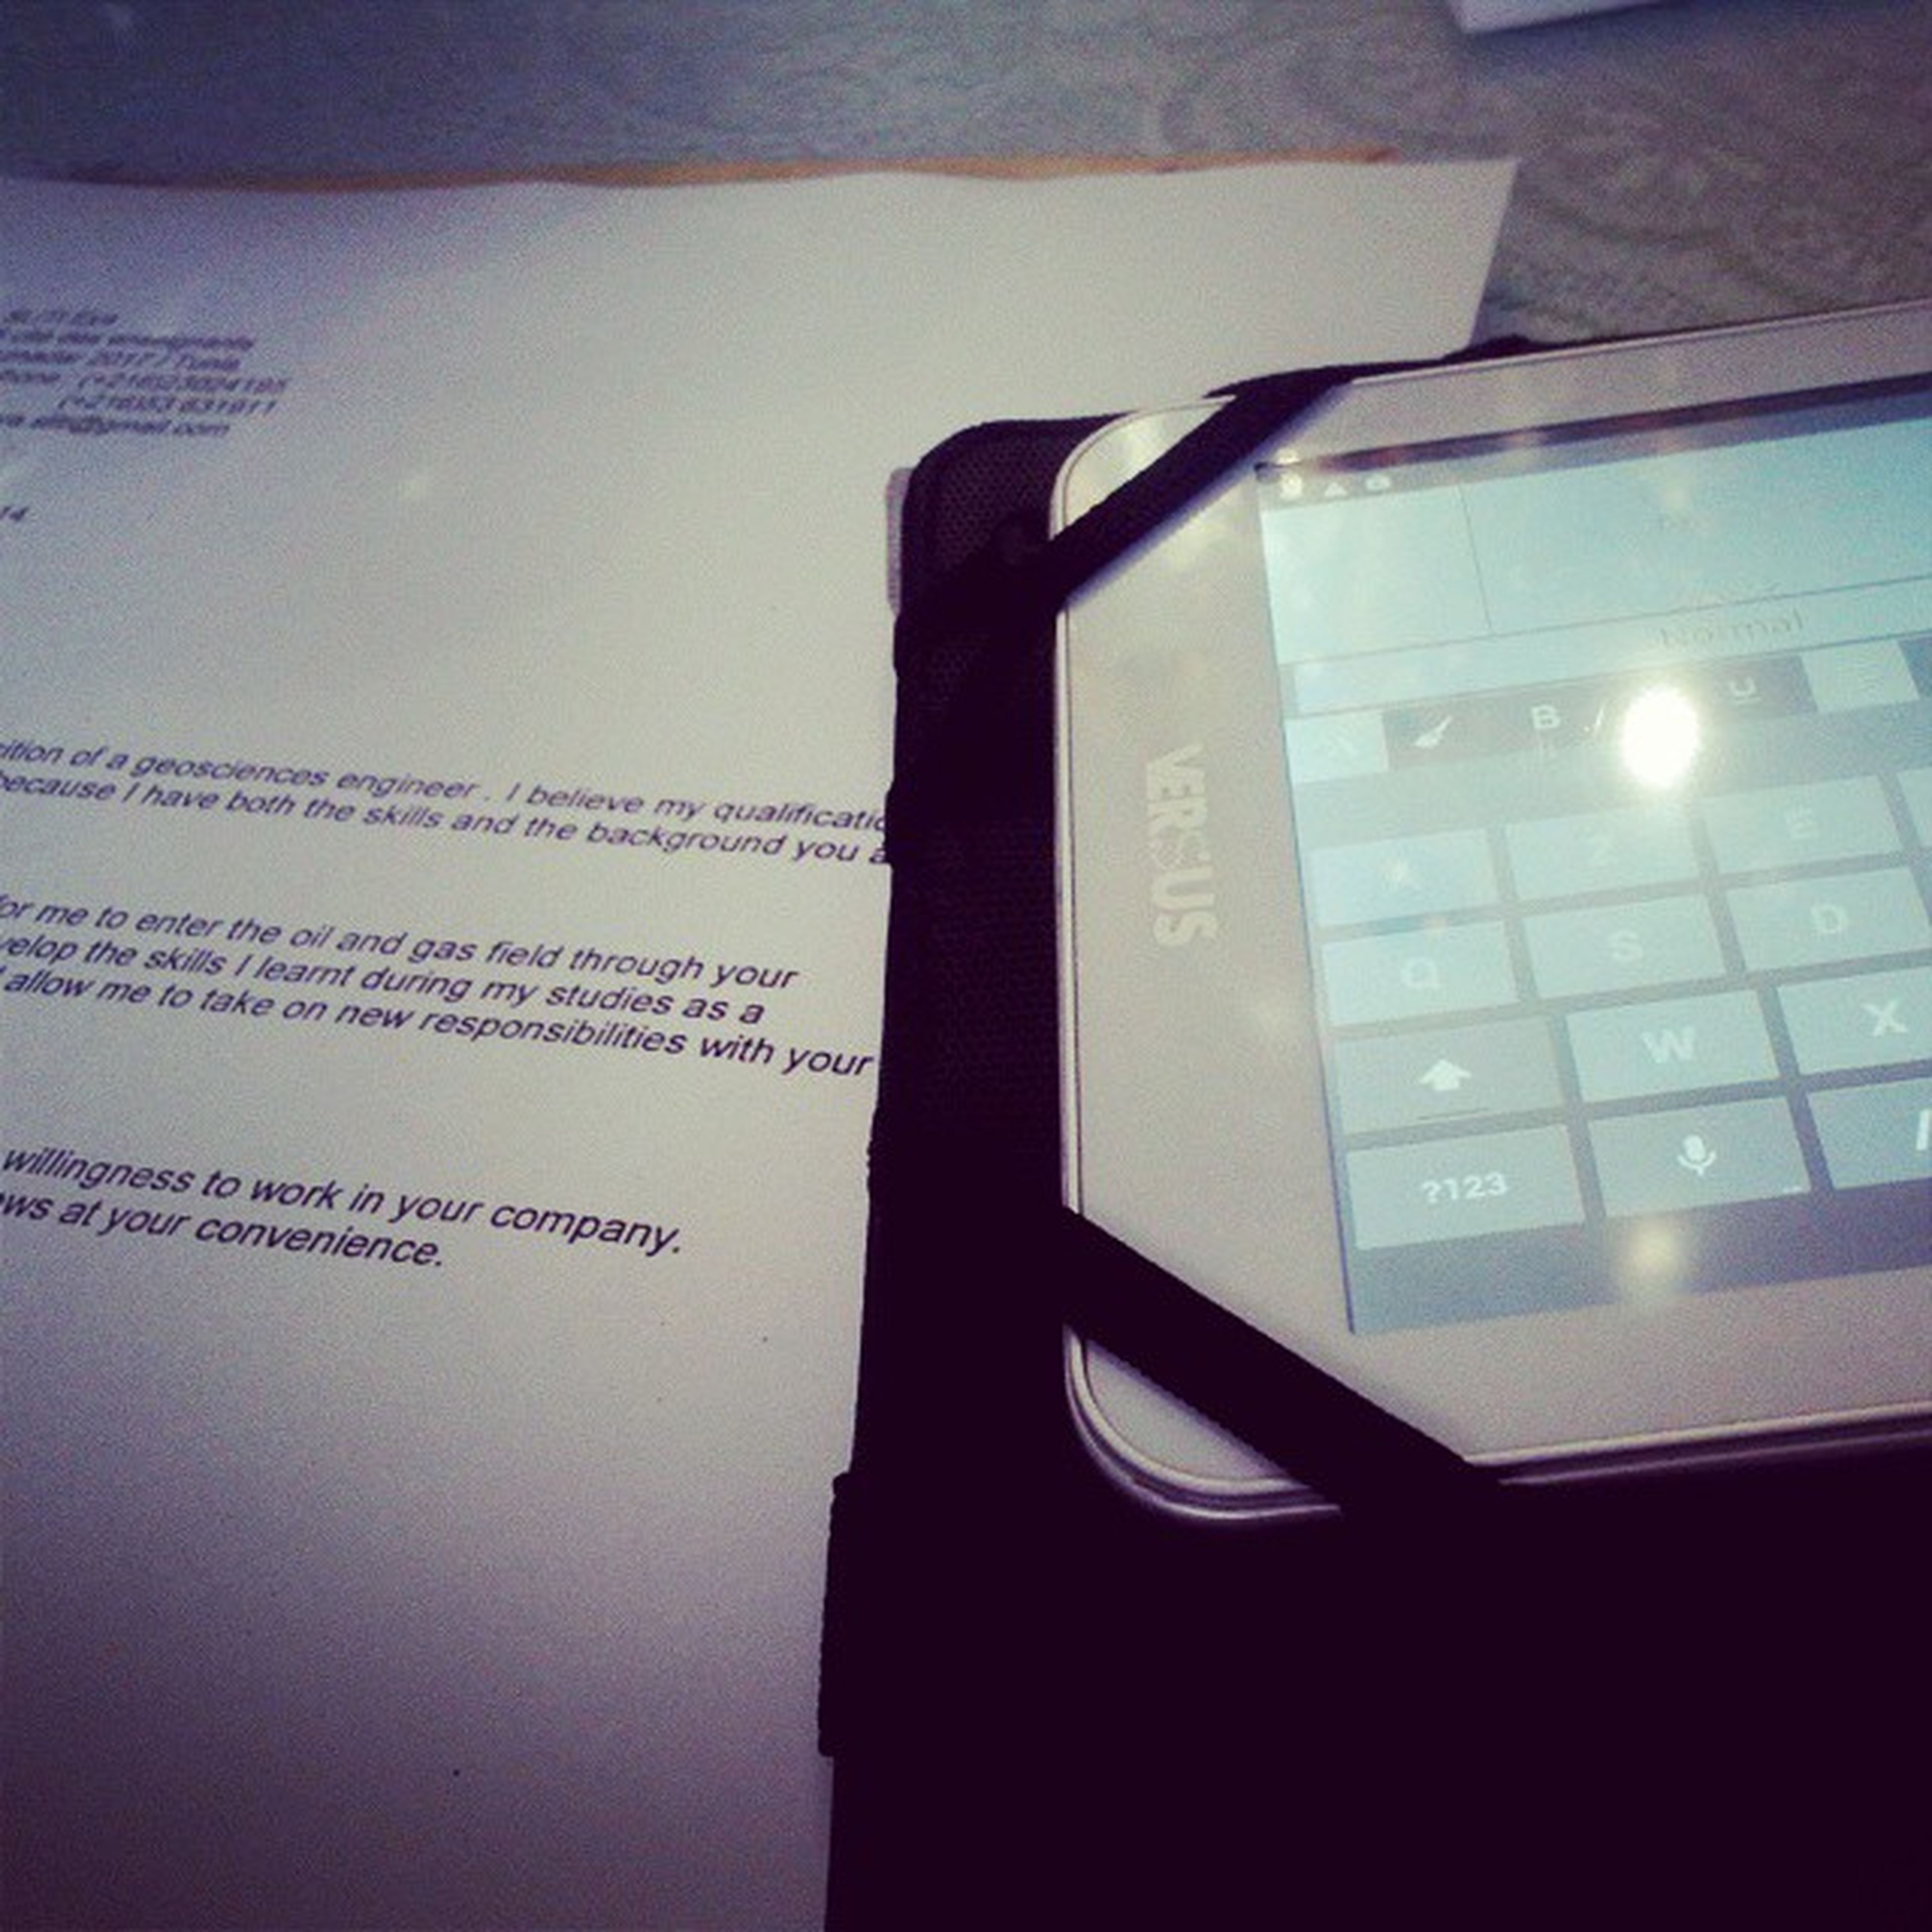 when the PC is down, the tablet becomes a good solution. Looking_for_a_job Lettre_of_application Good Afternoon